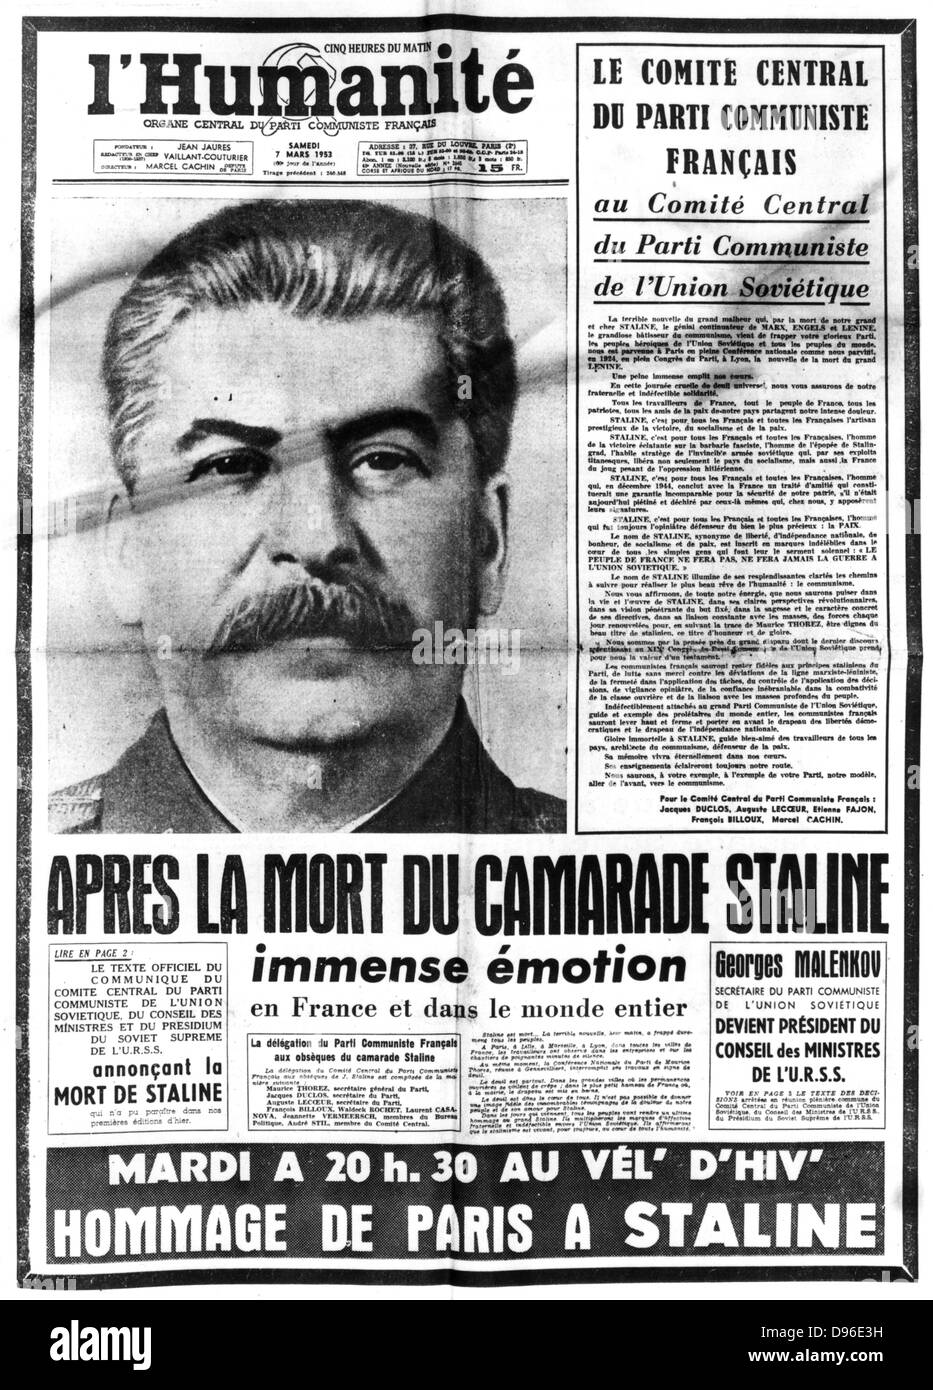 Title page of 'l'Humanite', Paris, 7 March 1953 reporting on the death of Joseph Stalin (1879-1953) - Stock Image